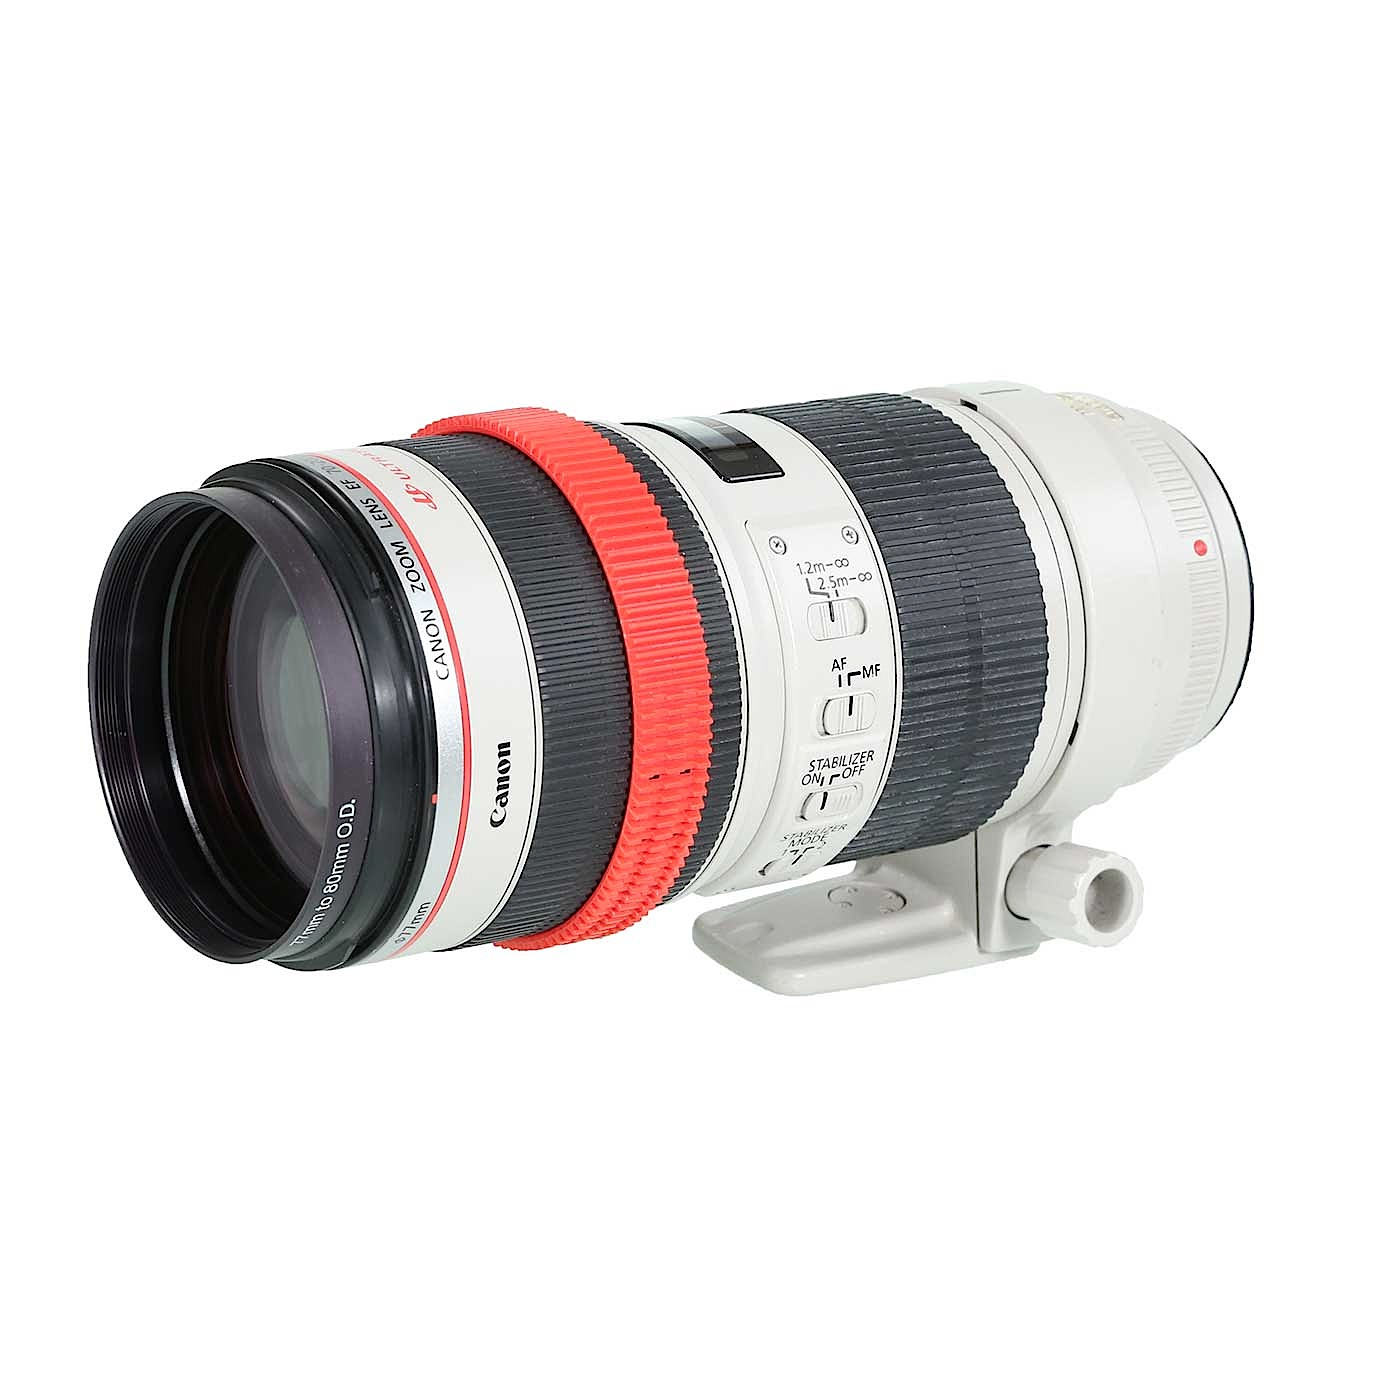 Canon EF 70-200mm IS II Still Photo Zoom Lens